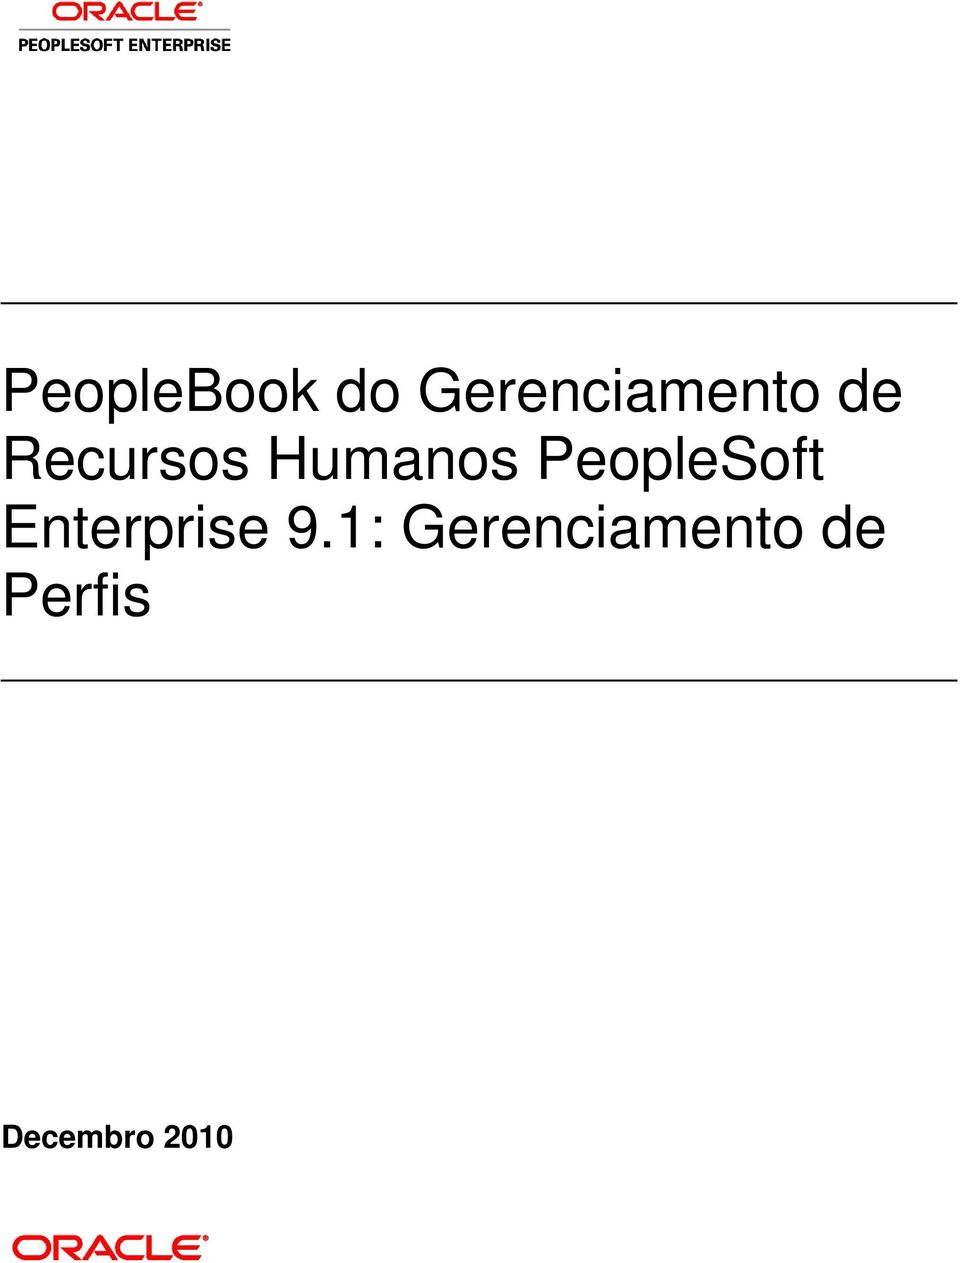 PeopleSoft Enterprise 9.